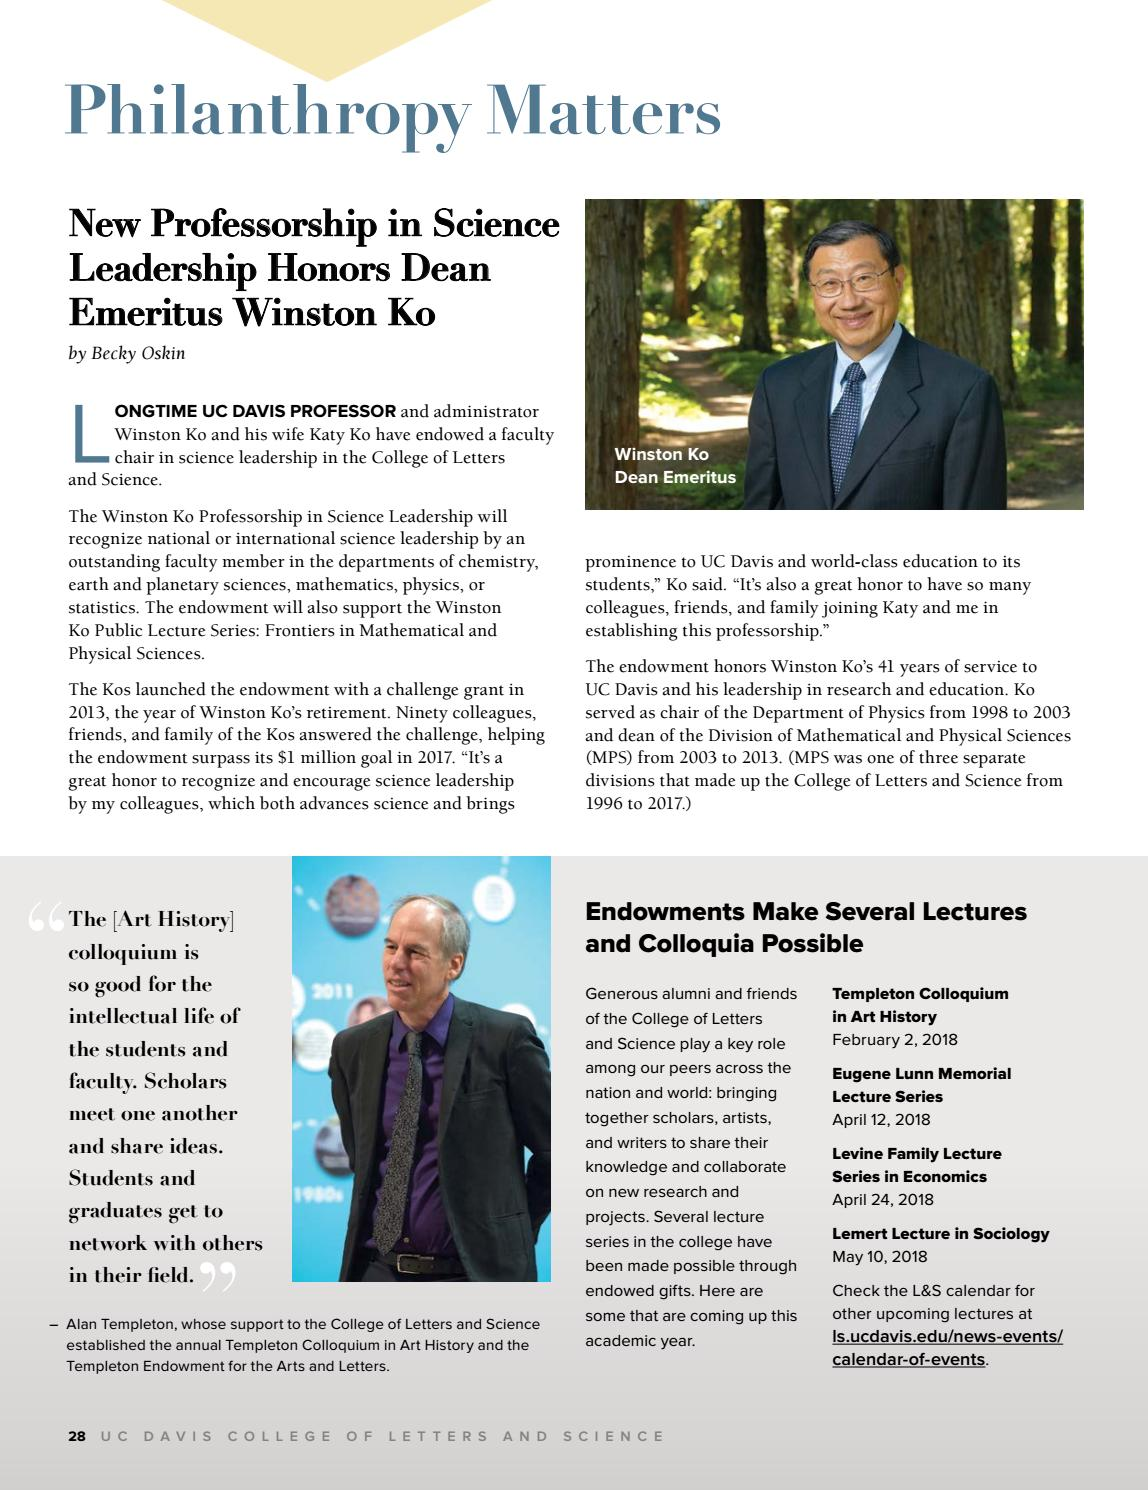 Uc Davis Academic Calendar.Uc Davis College Of Letters And Science Magazine Fall 2017 By Uc